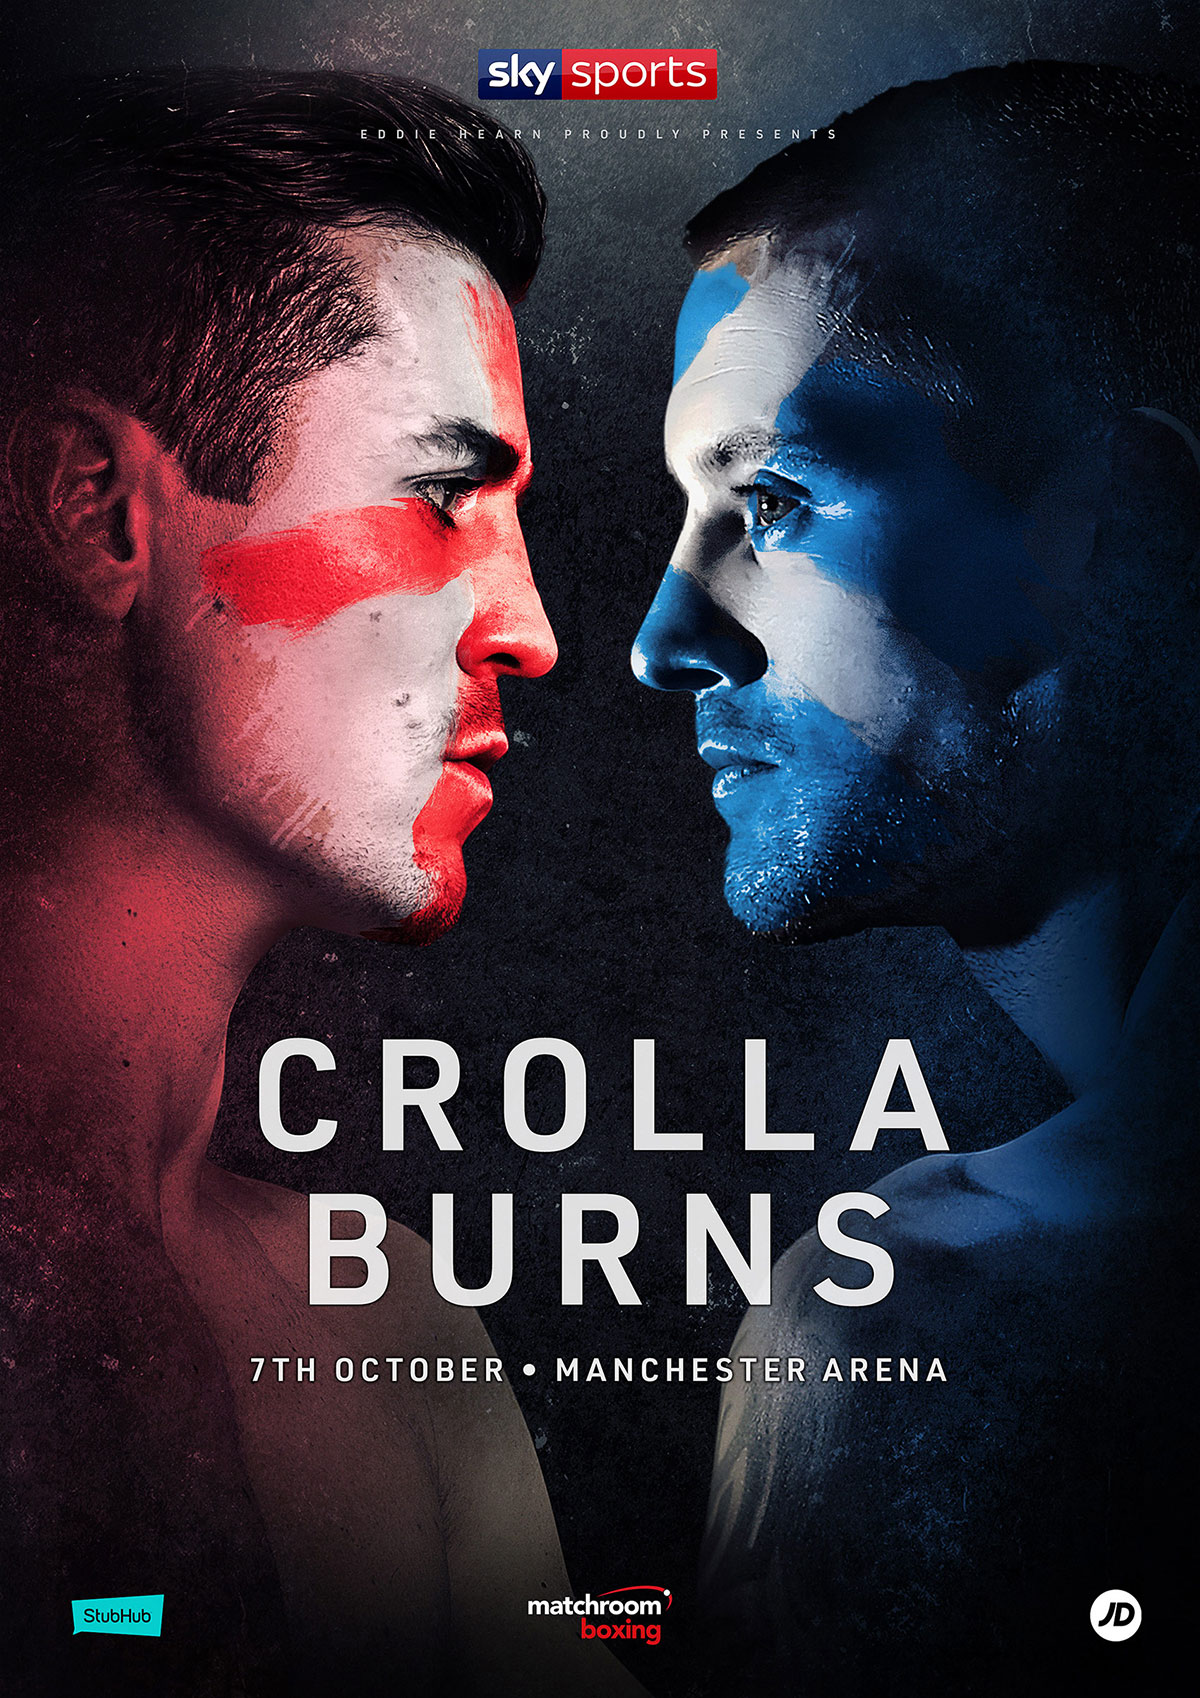 poster for Manchester's Ant Crolla's fight against Scotland's Ricky Burns